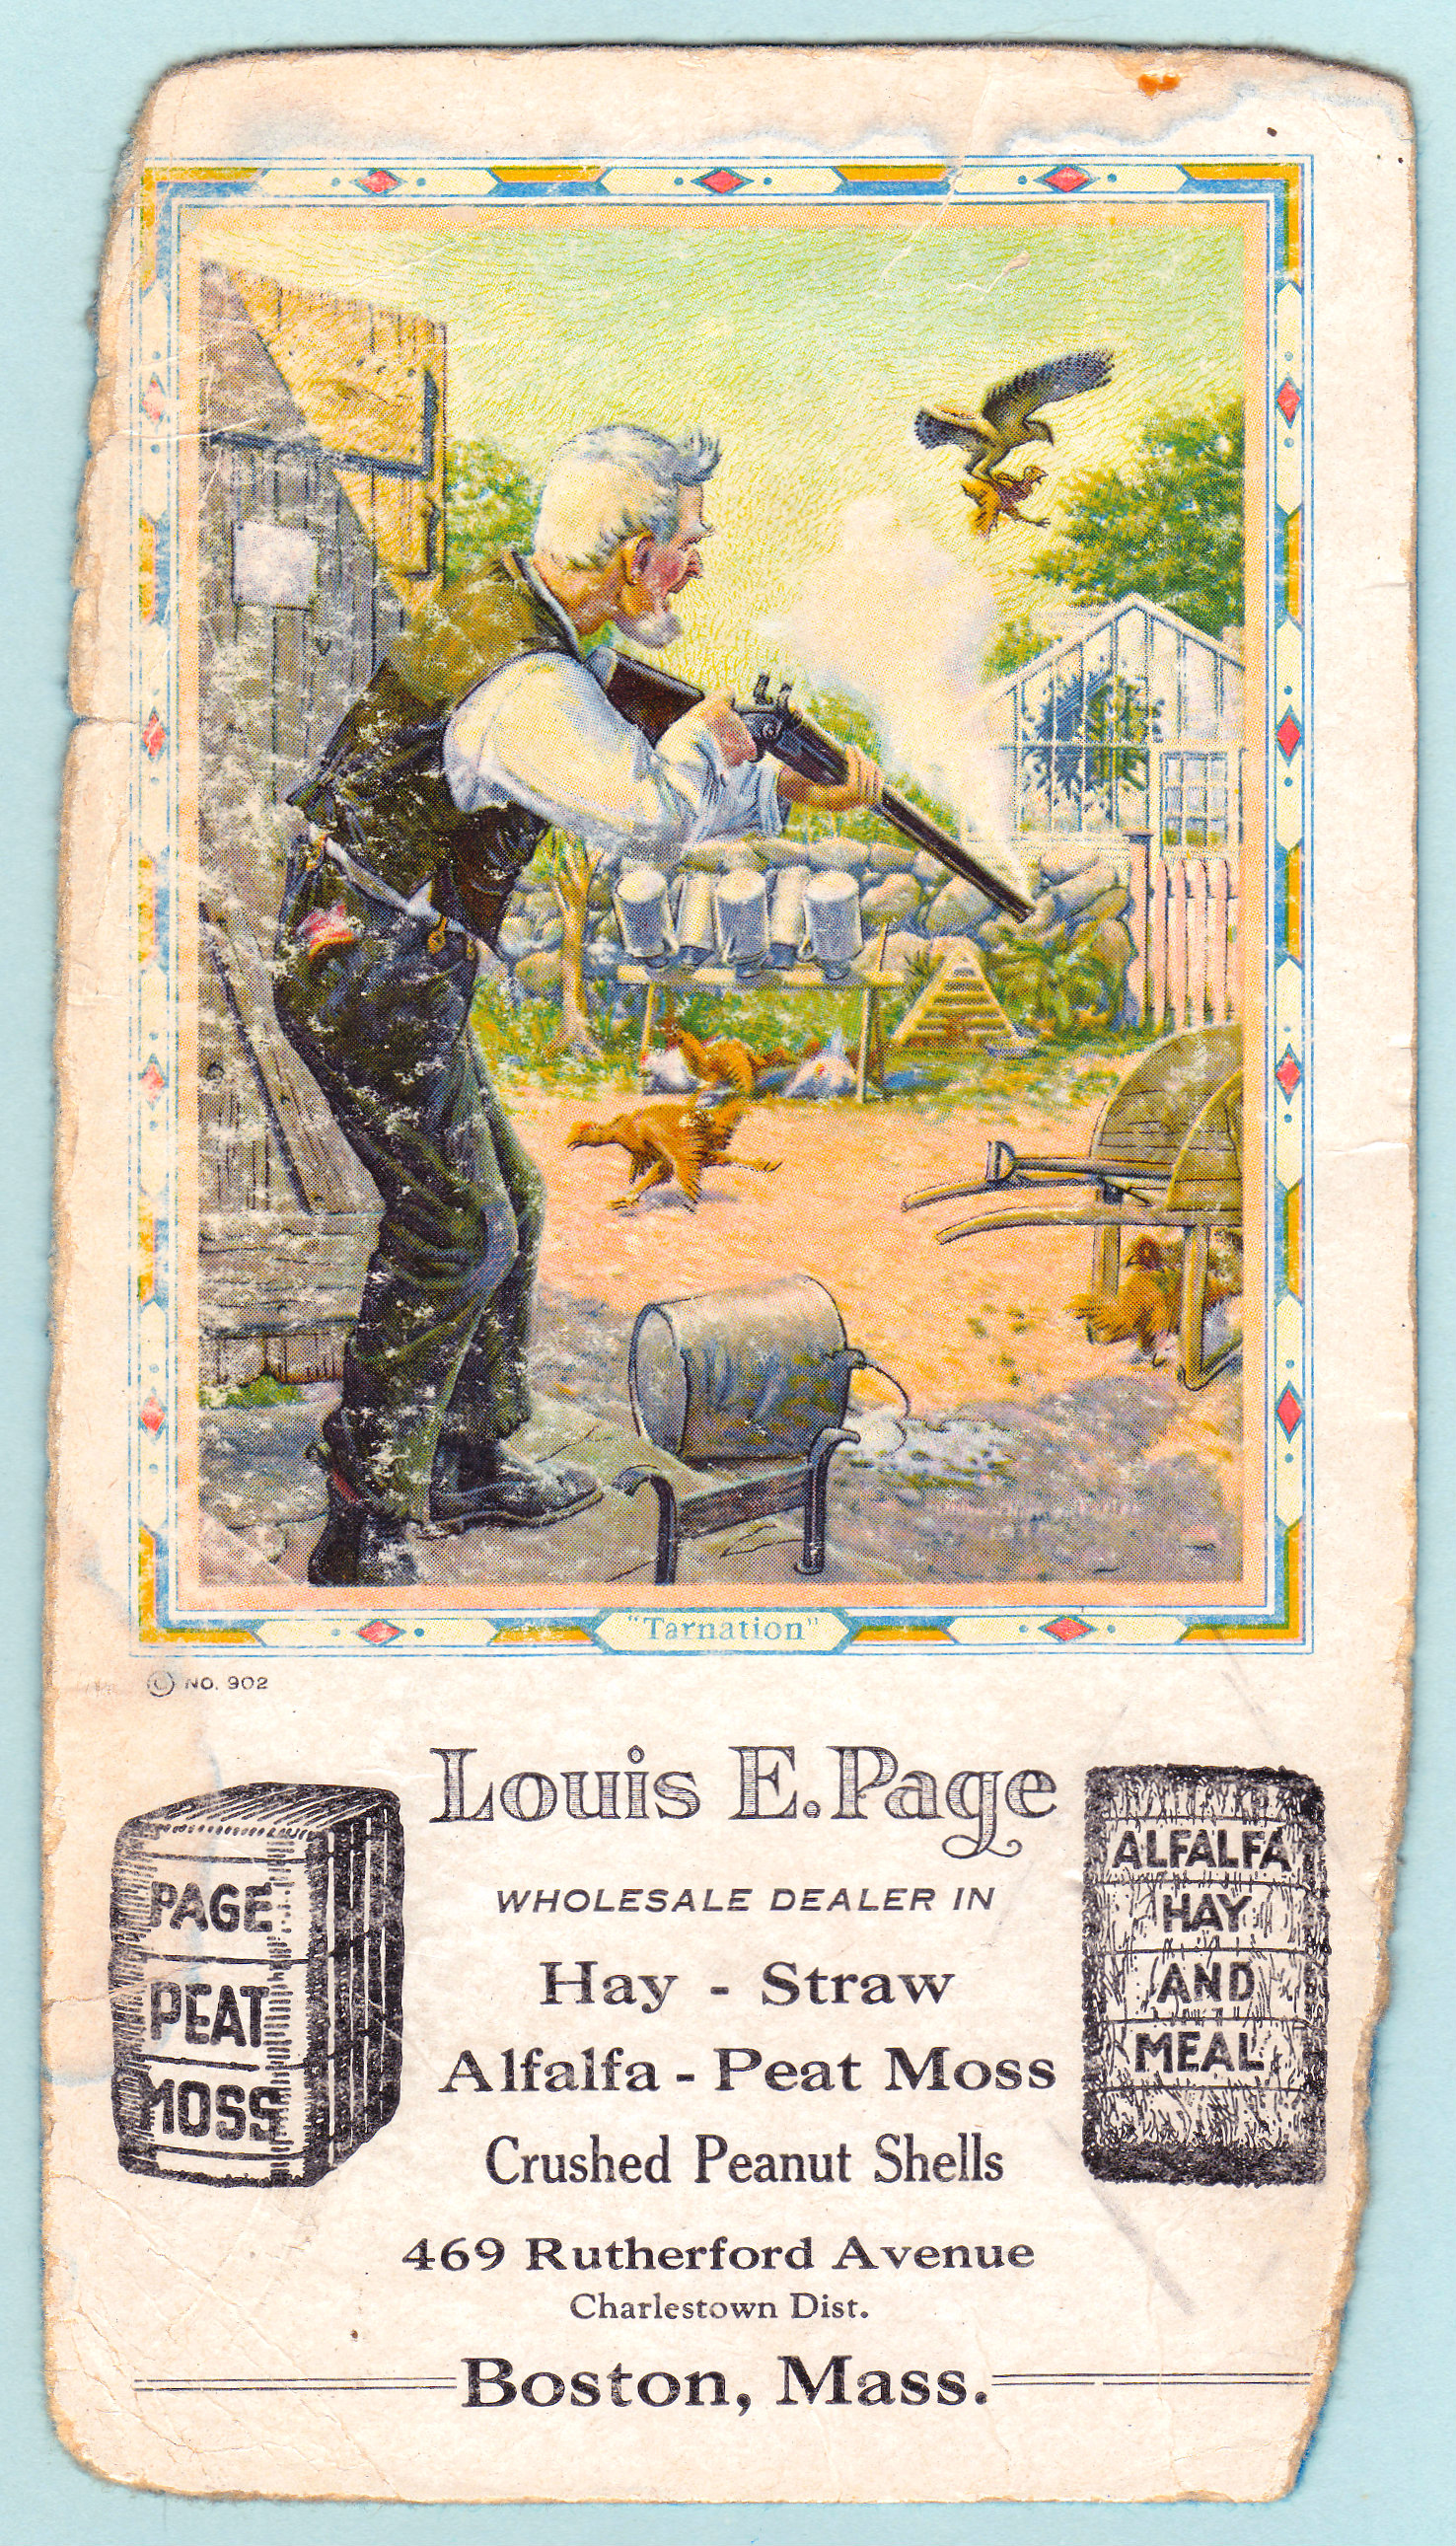 Louis E. Page, Inc. advertisement